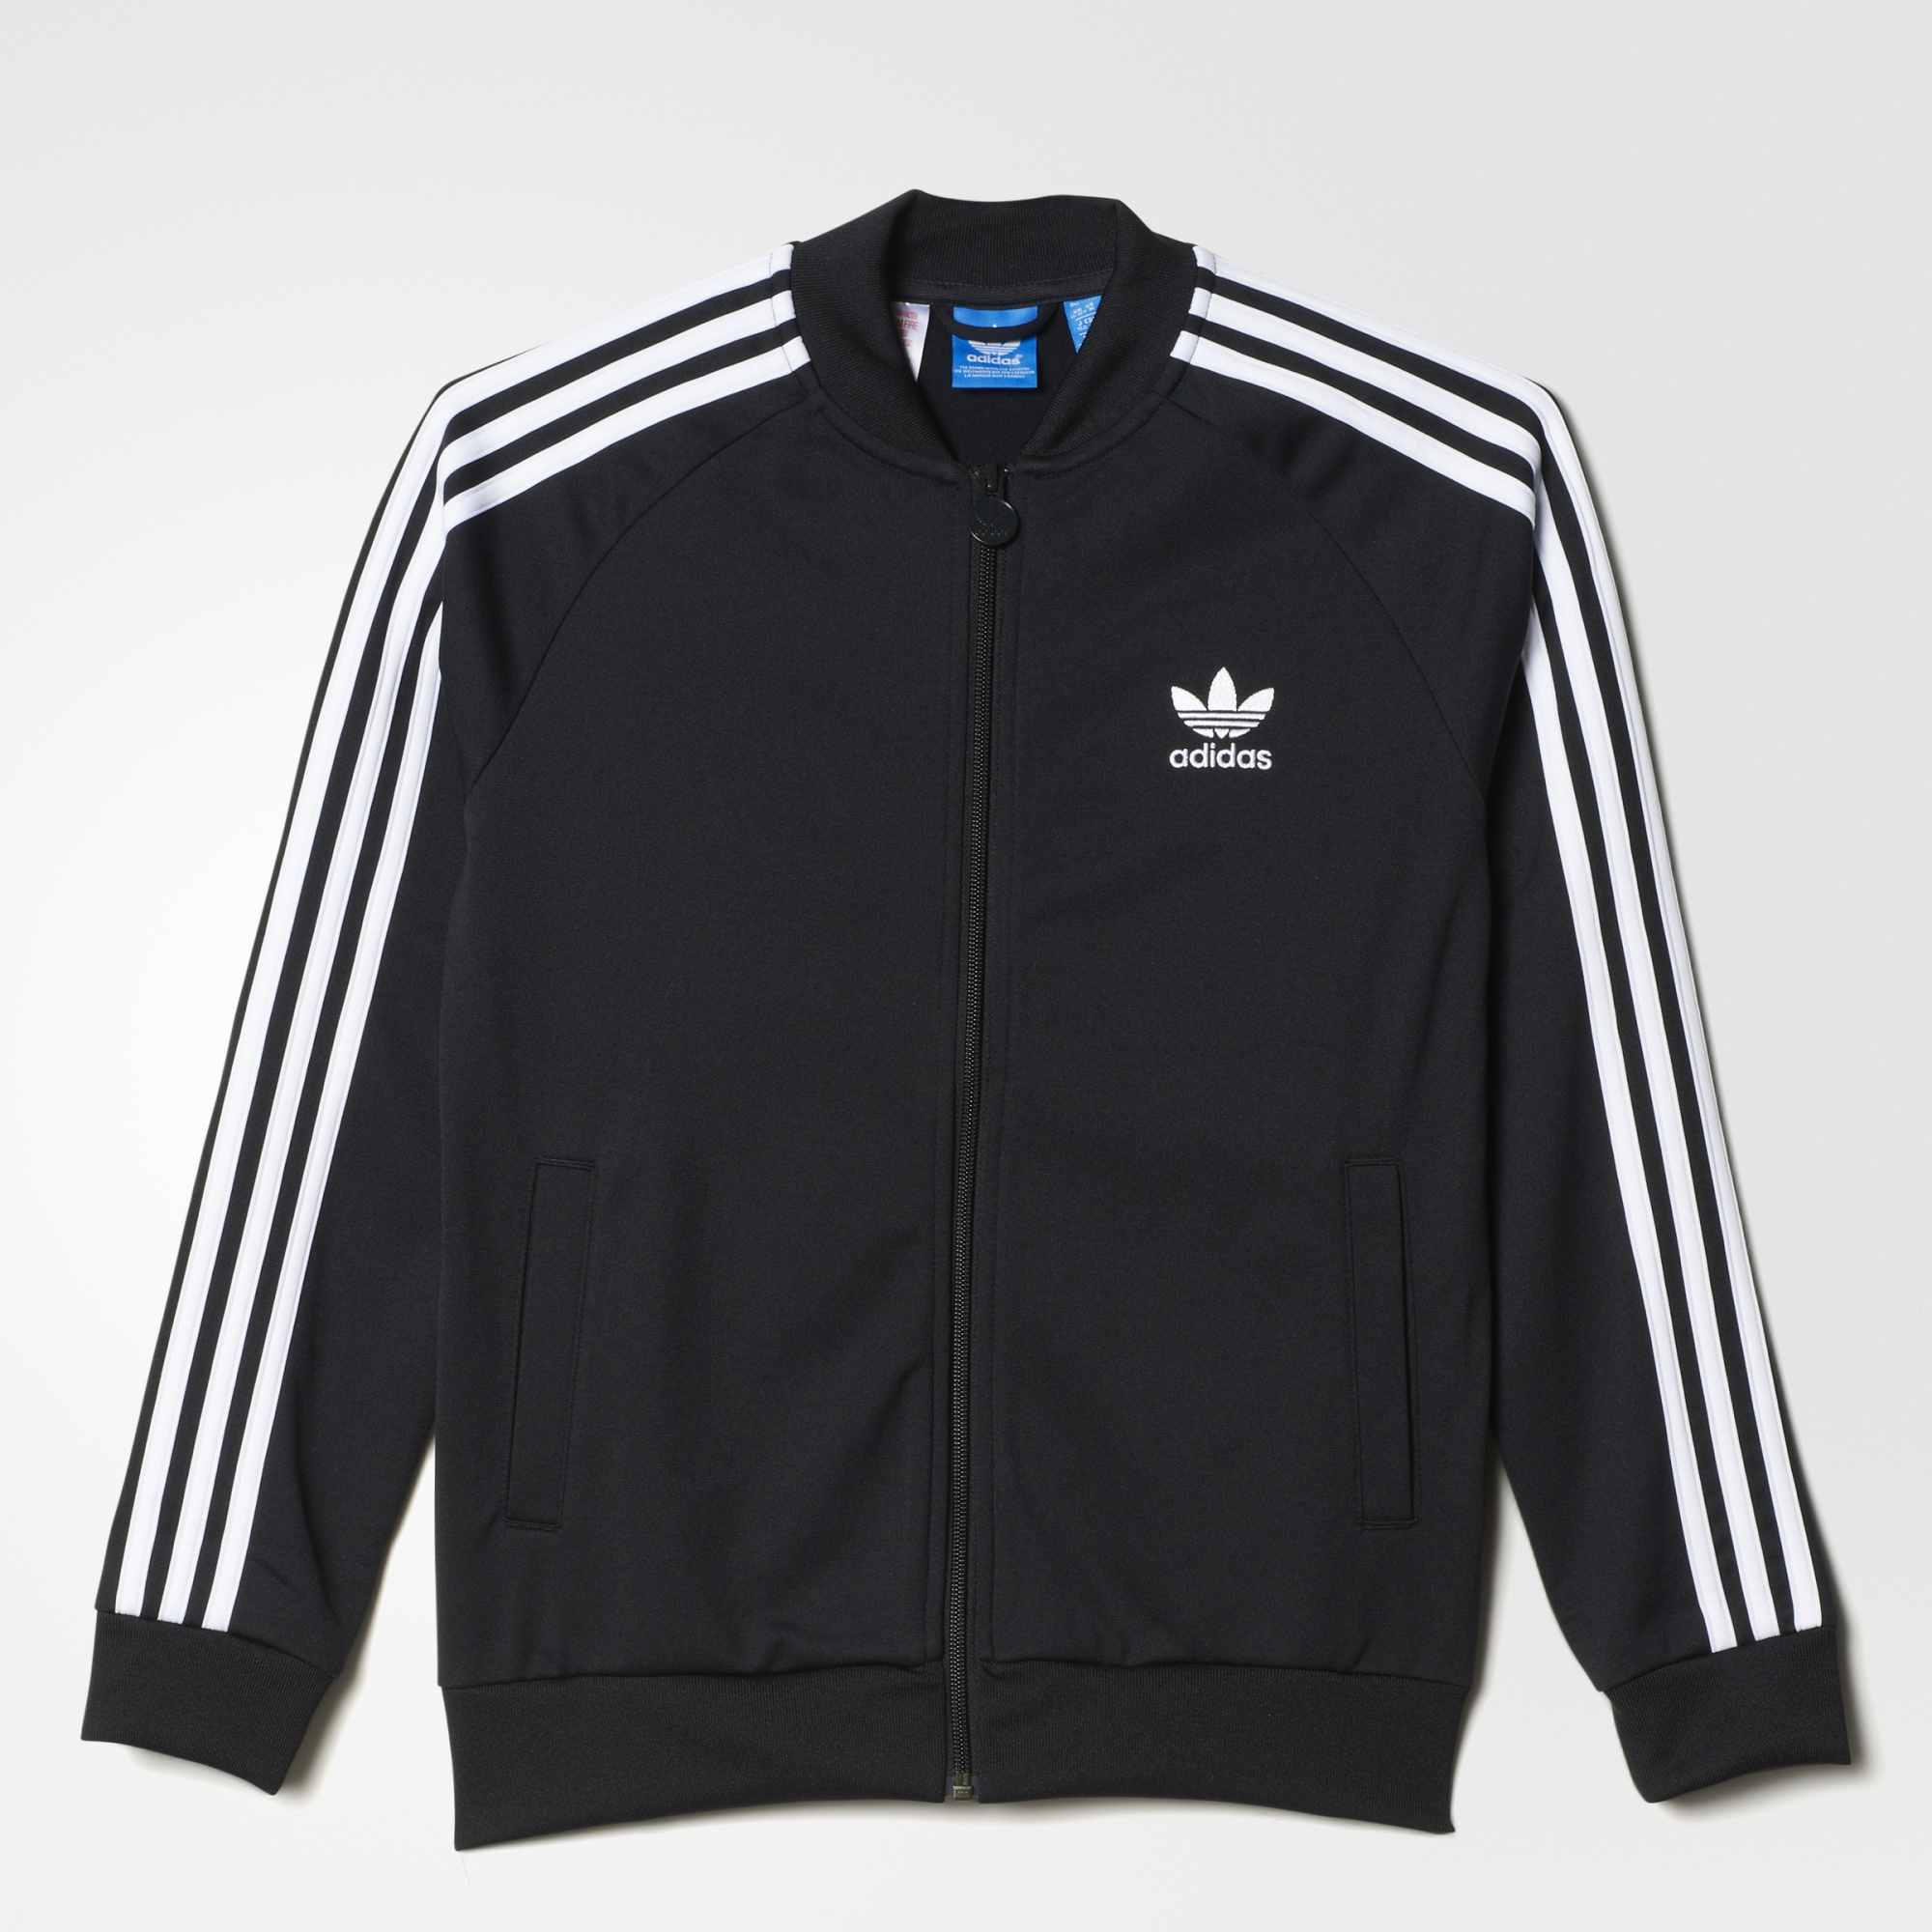 adidas superstar jacket black adidas uk